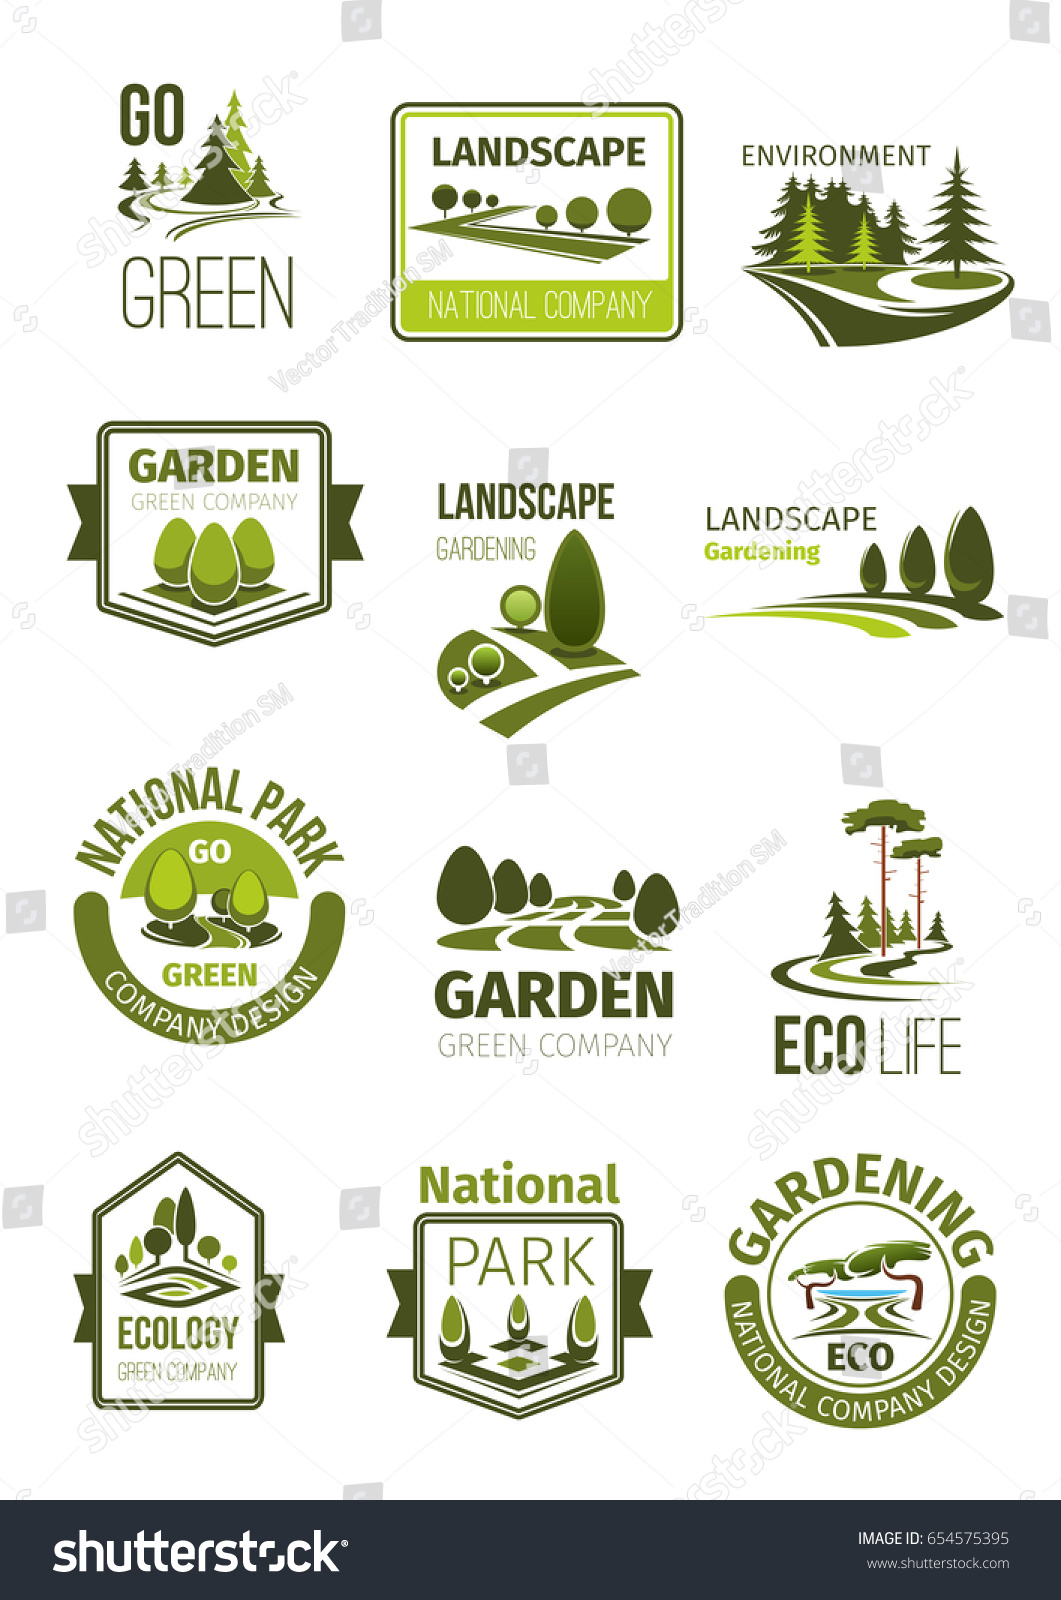 Garden green landscape design company icons stock vector for Landscape design icons